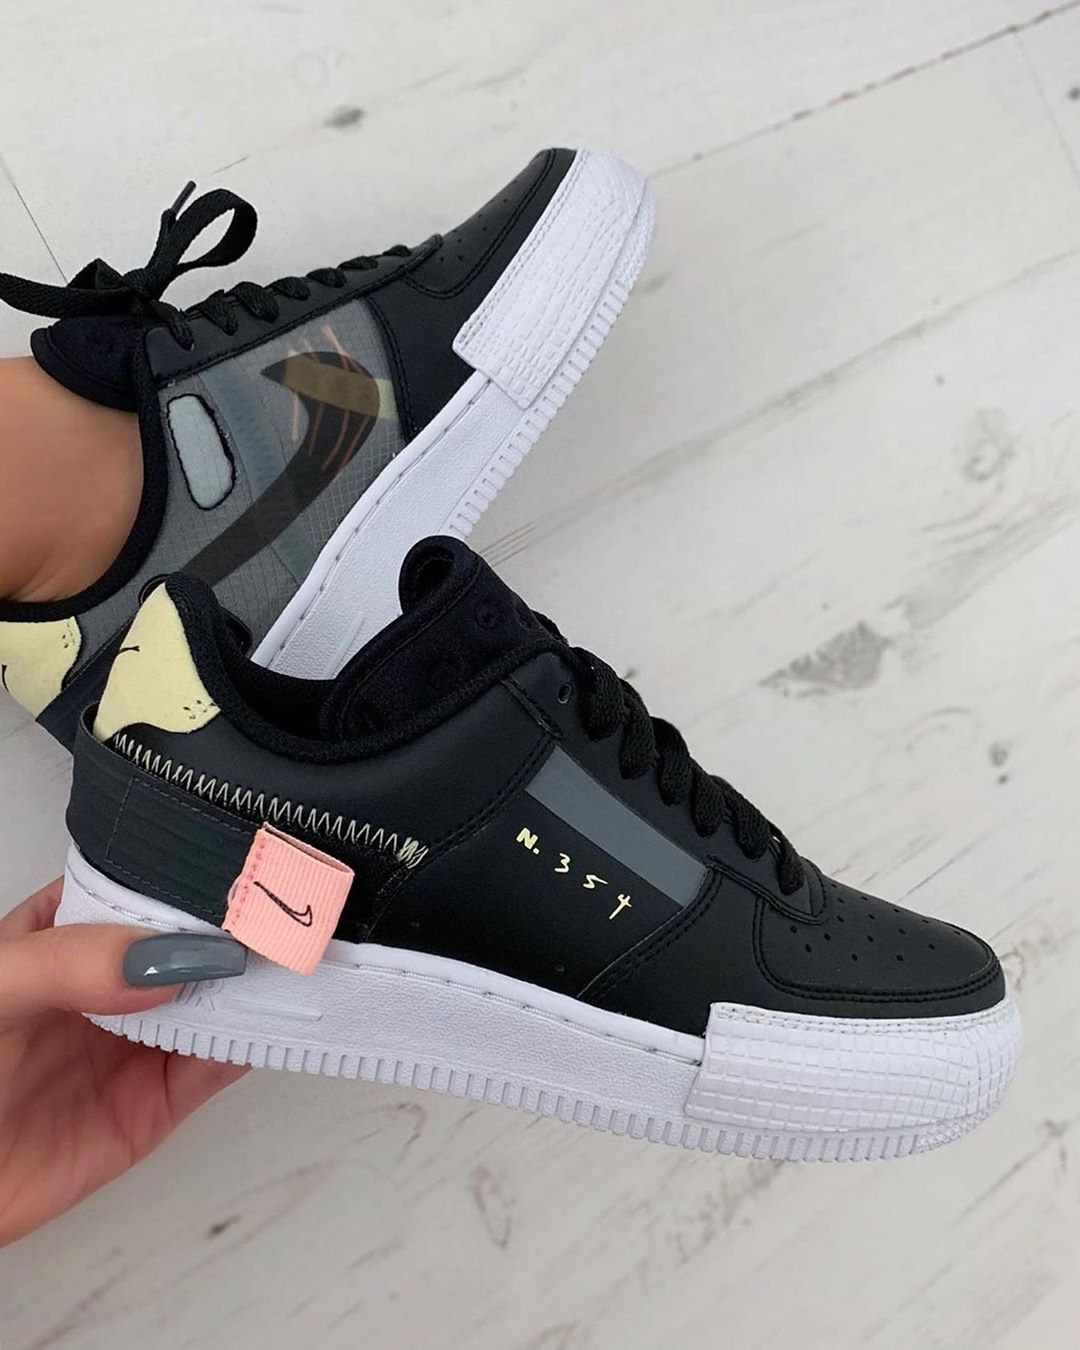 Nike Air Force 1 Type Link in organic, to shop currently